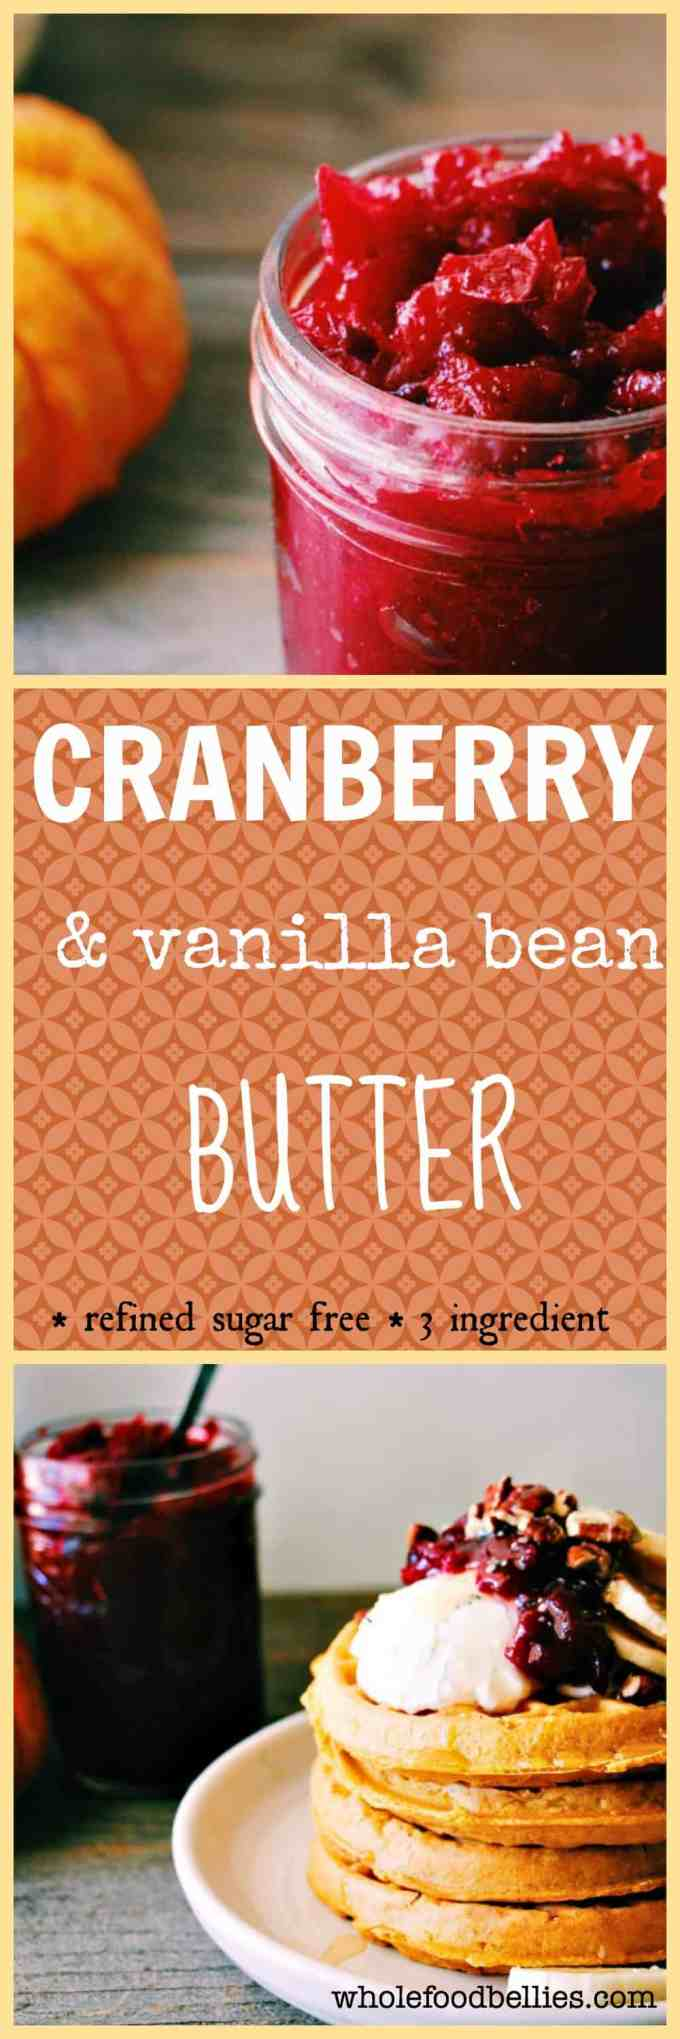 Cranberry and Vanilla Bean Butter. Naturally sweetened and clean eating approved, this butter is a perfect addition to your morning toast or oats.